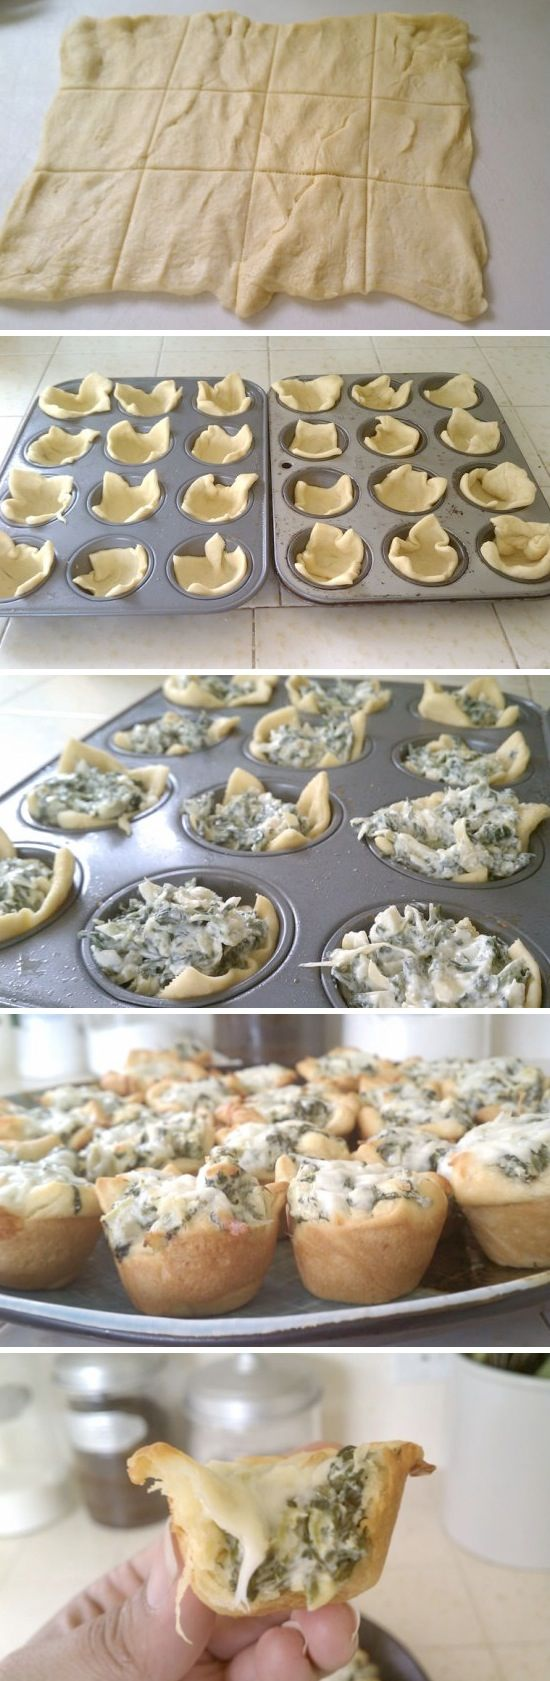 Spinach-Artichoke-Bites-Recipe-By-Photo